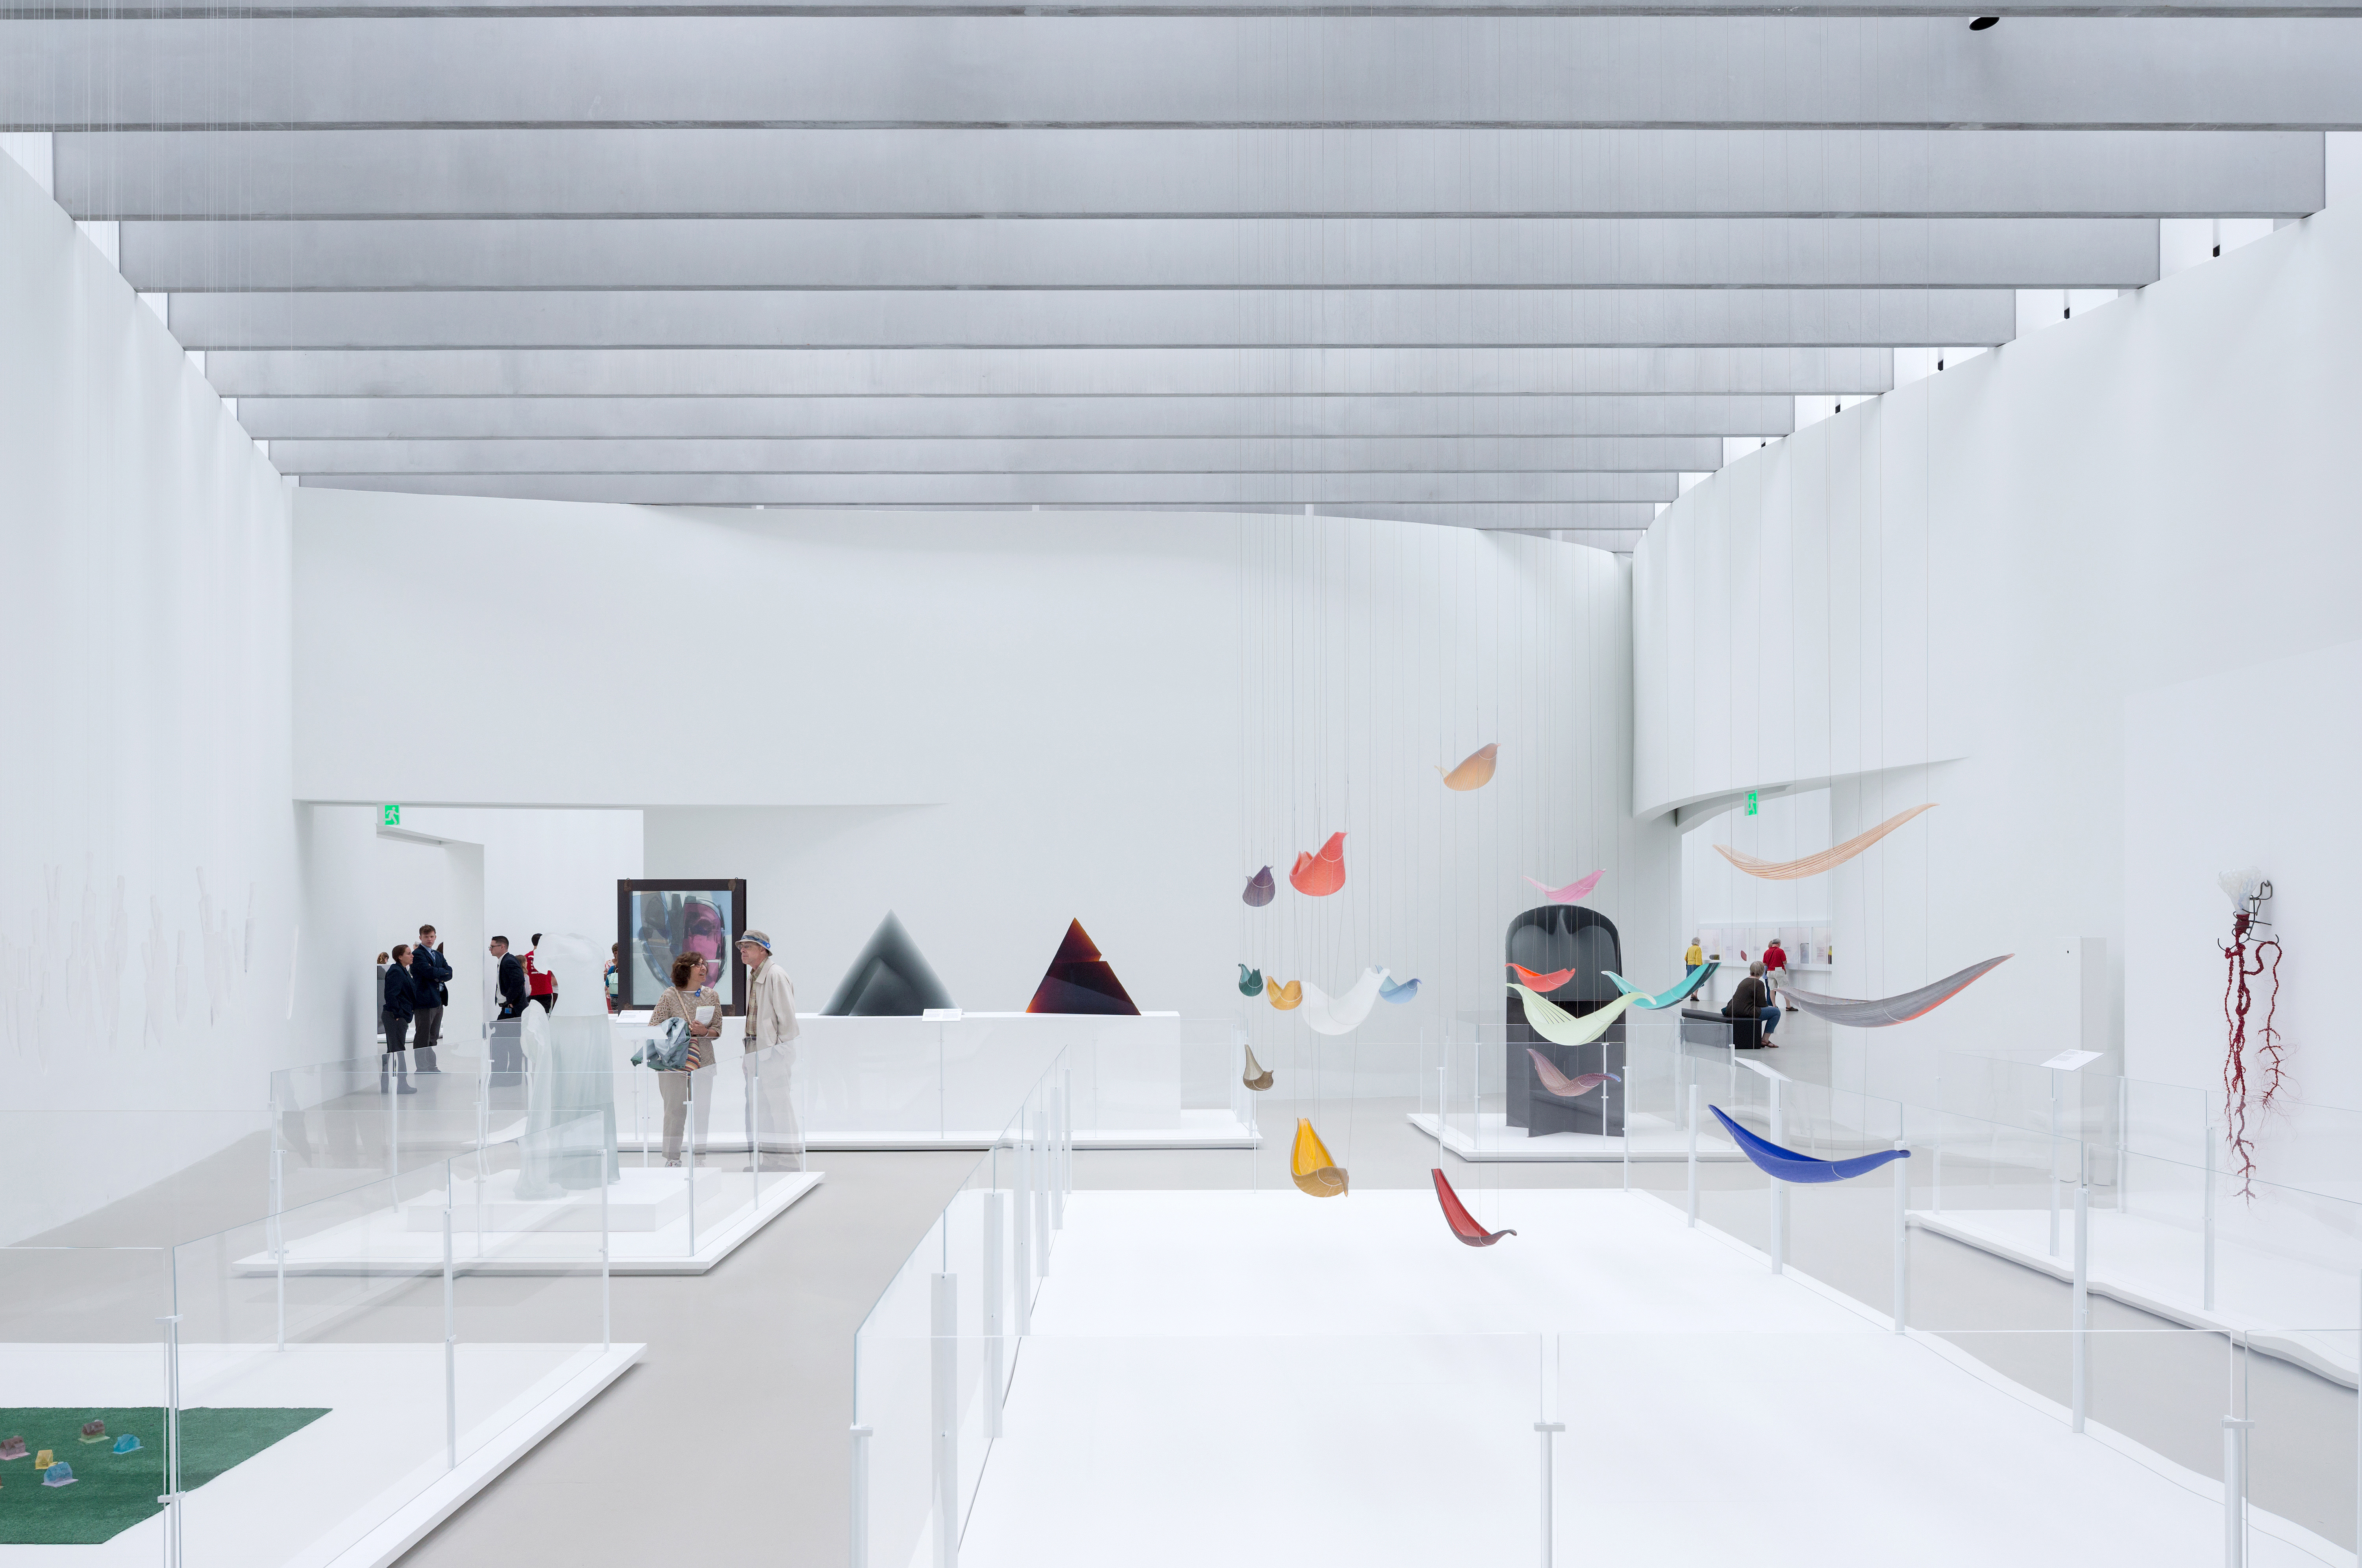 View of the Contemporary Art + Design Wing at the Corning Museum of Glass